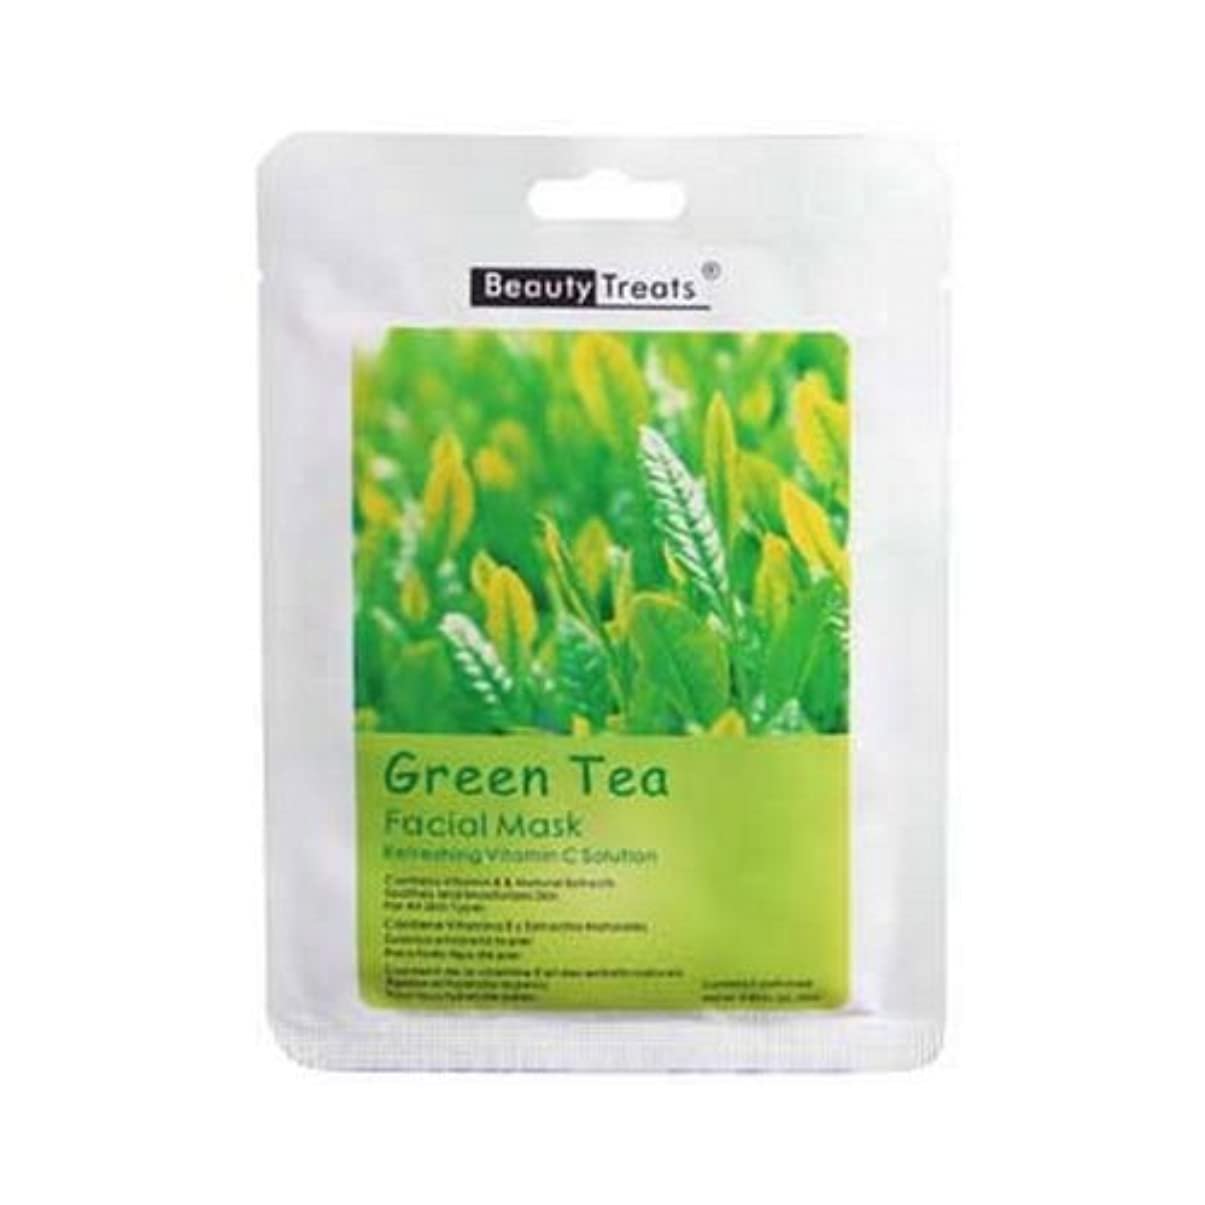 懐疑的エキサイティングカレンダー(6 Pack) BEAUTY TREATS Facial Mask Refreshing Vitamin C Solution - Green Tea (並行輸入品)